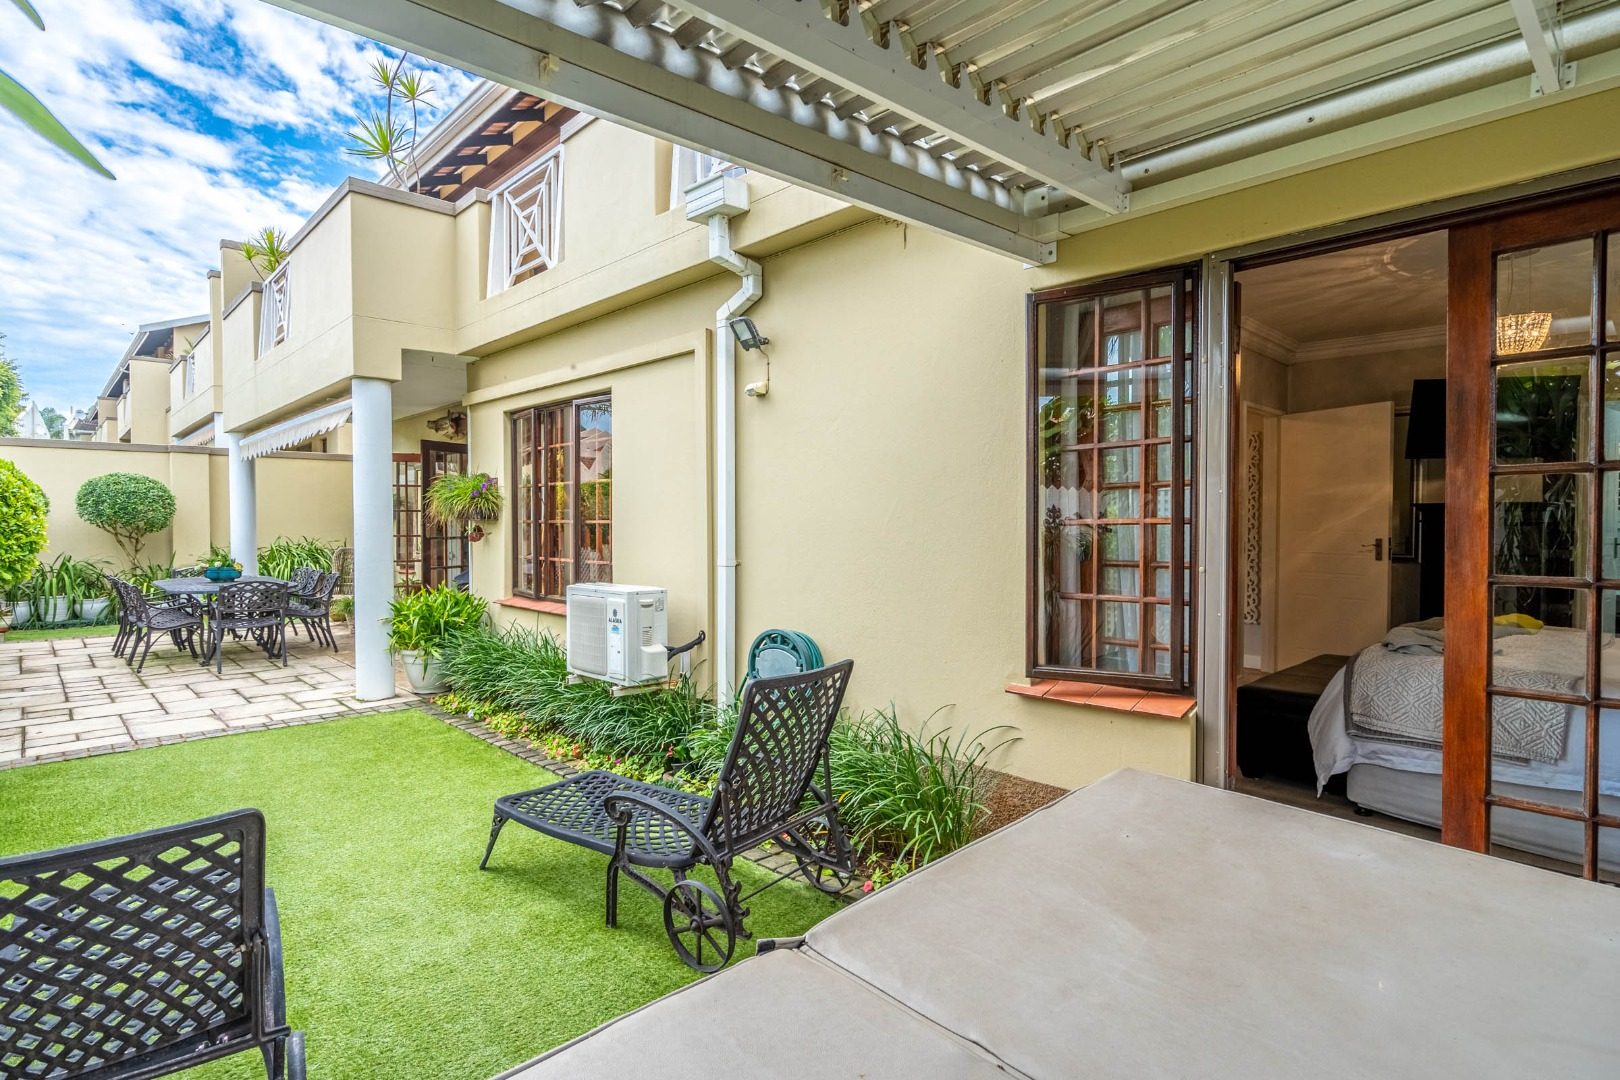 3 Bedroom Townhouse For Sale in Durban North